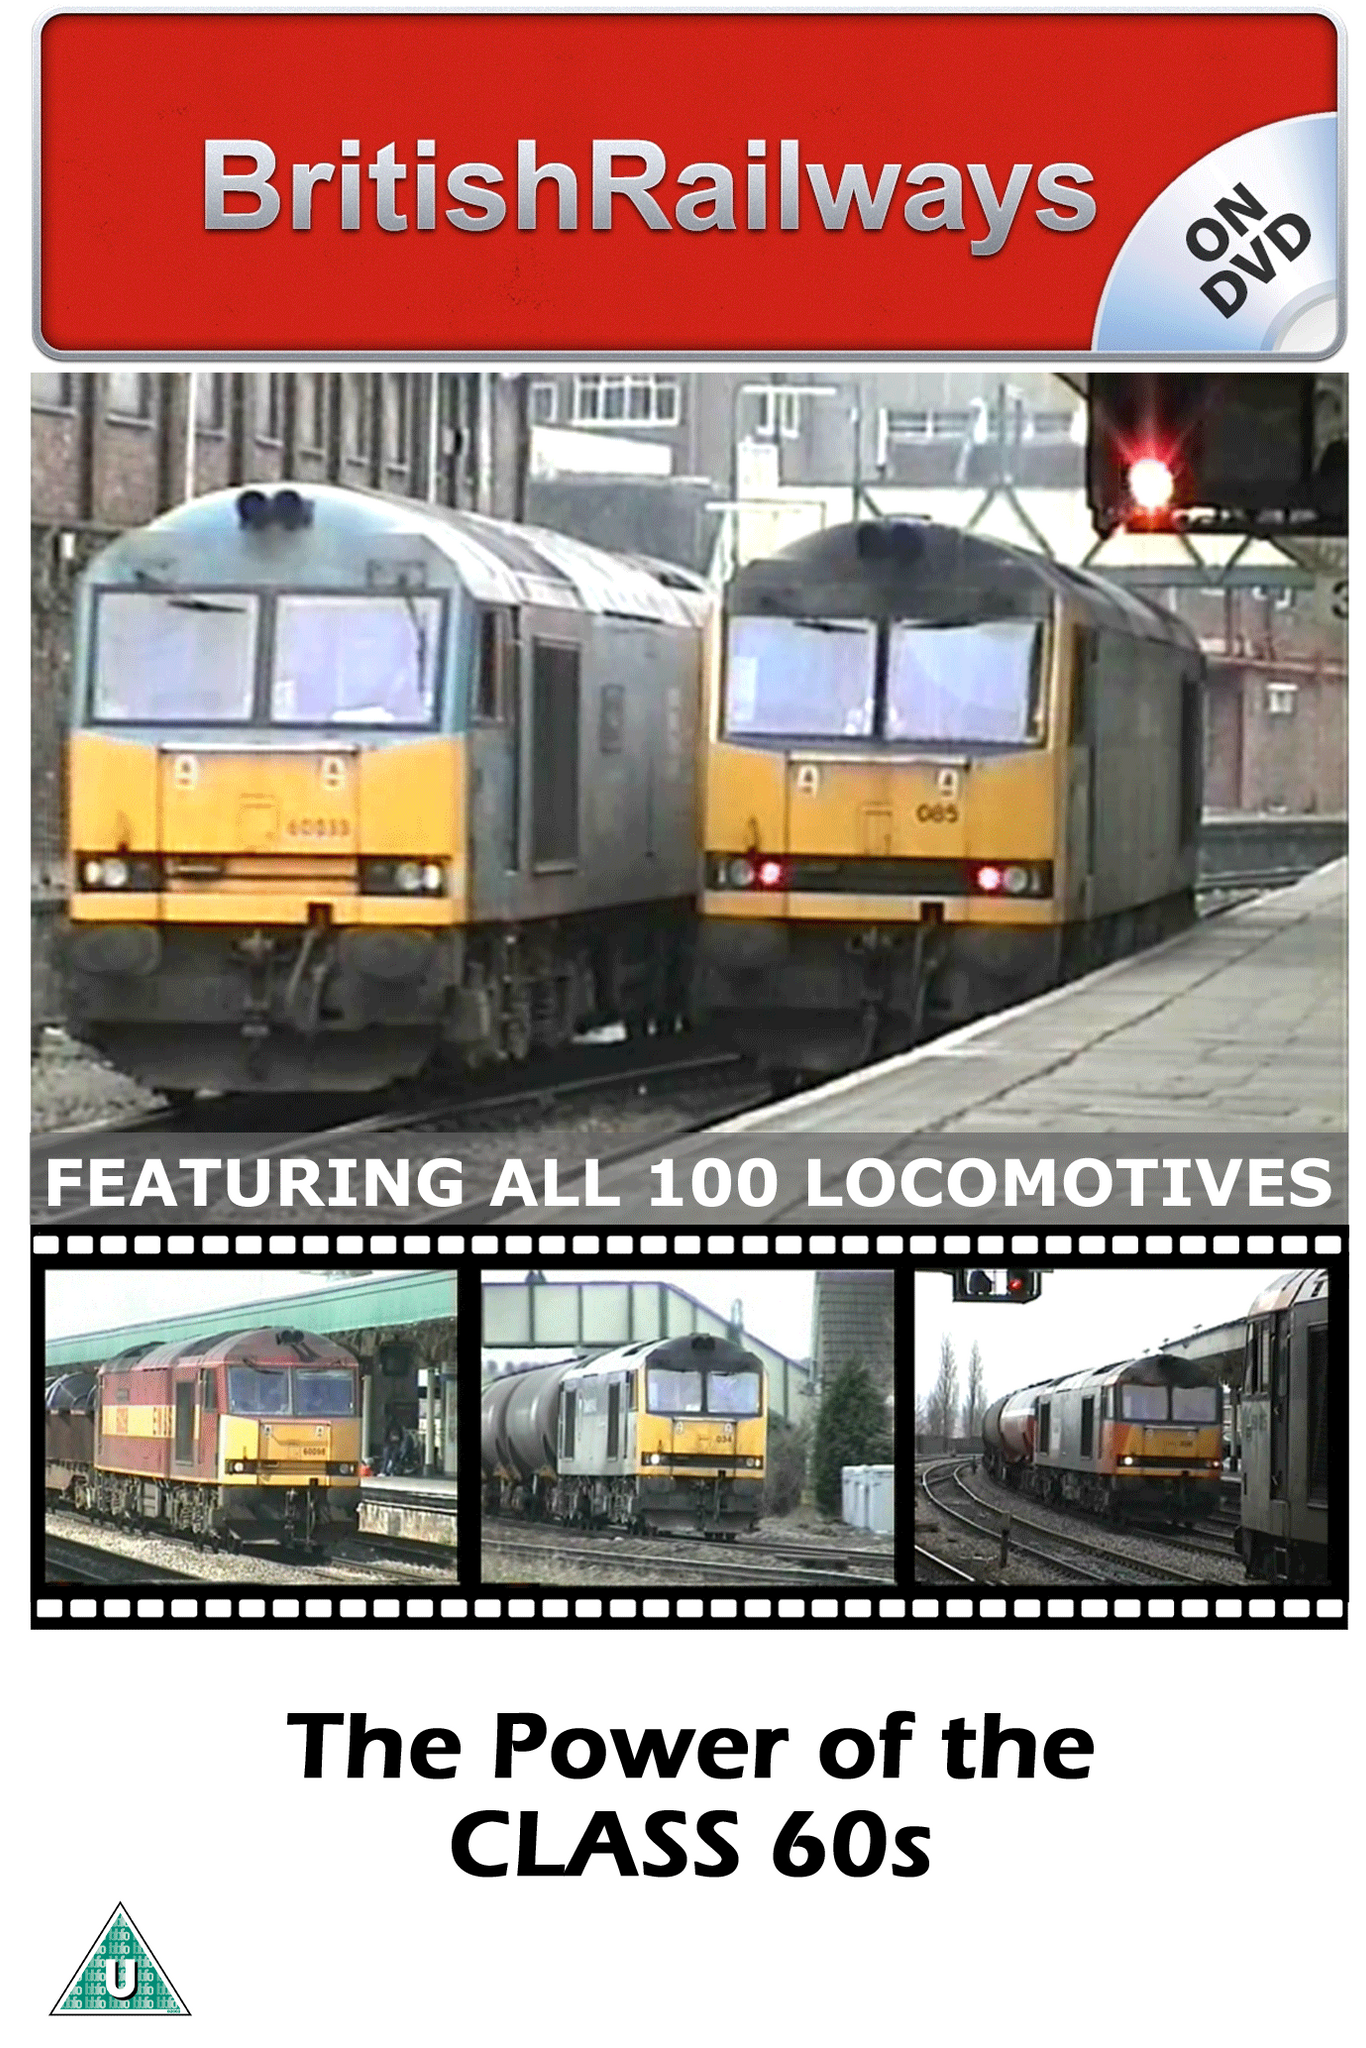 The Power of the Class 60